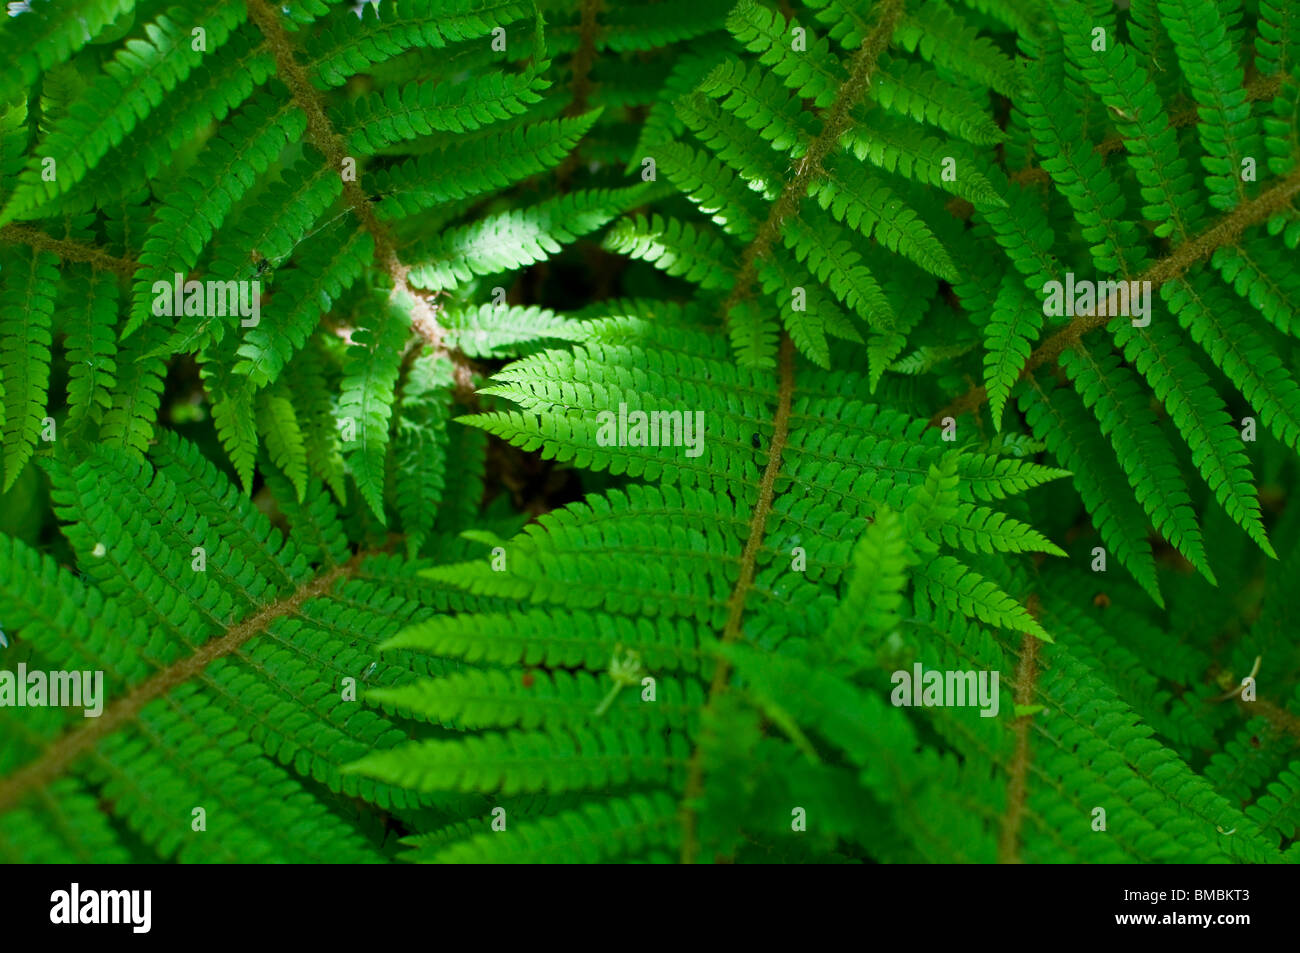 A fern blooms to life in the temperate rainforest of the Bovey Valley, Devon, United Kingdom. - Stock Image